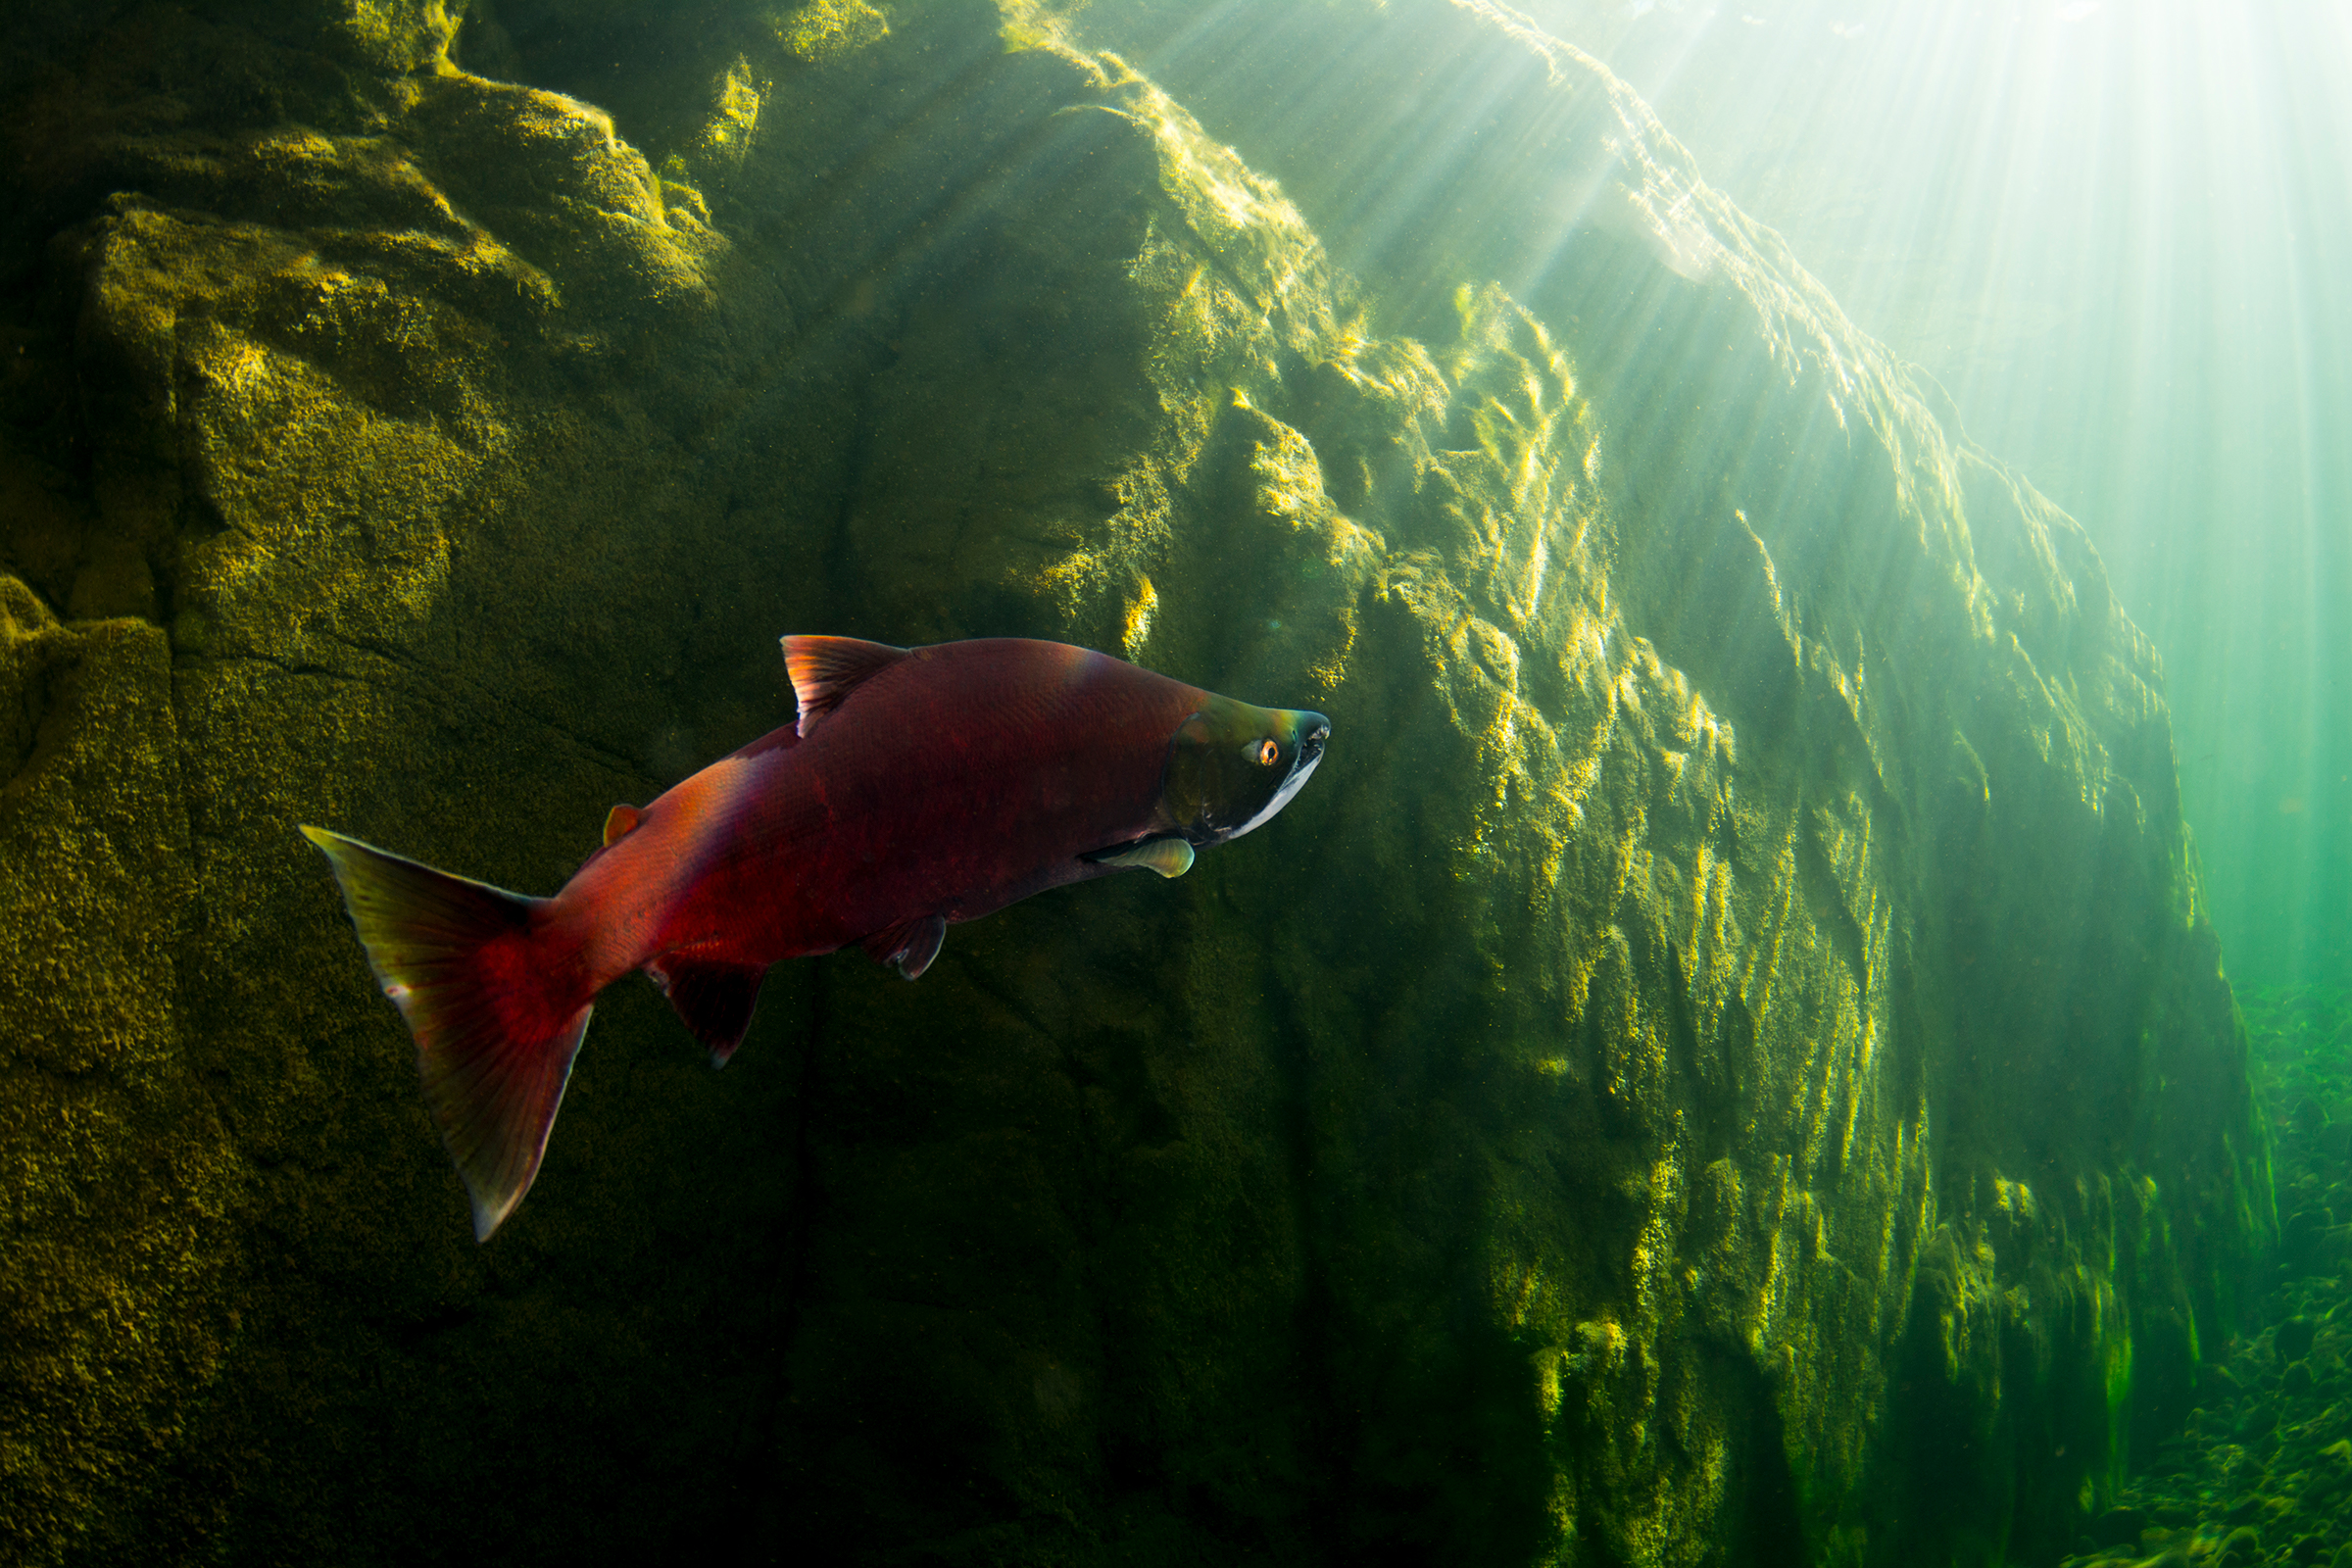 A spawning sockeye salmon makes its way toward the tributary where it hatched years earlier. Photograph by April Bencze